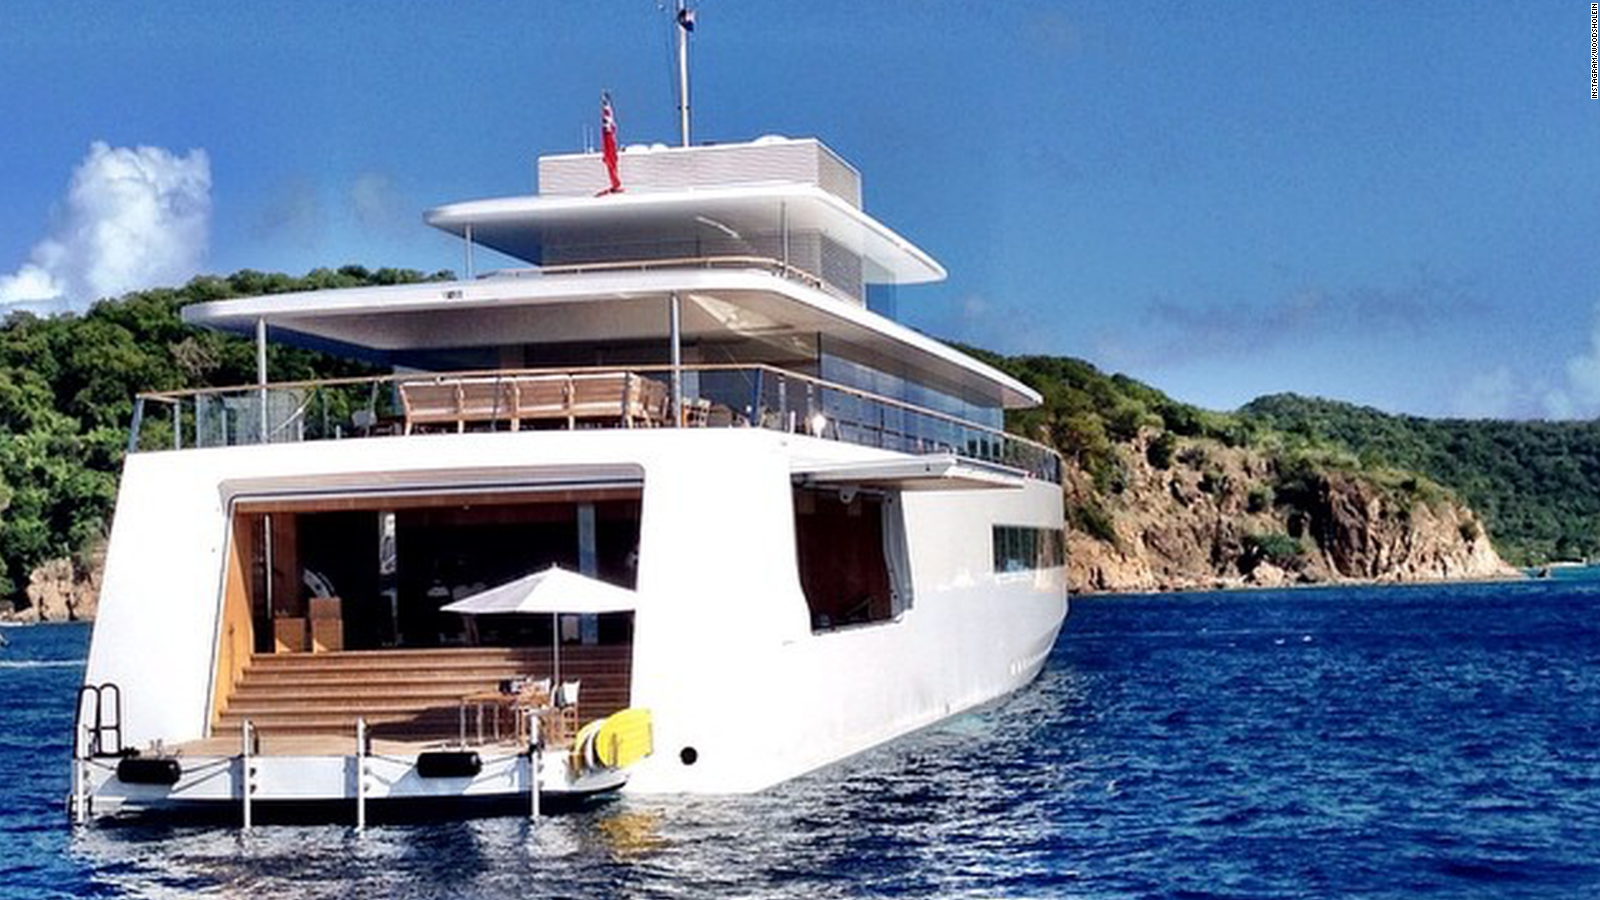 Steve Jobsu0027 Secret Yacht: The Rare, New Images   CNN Video